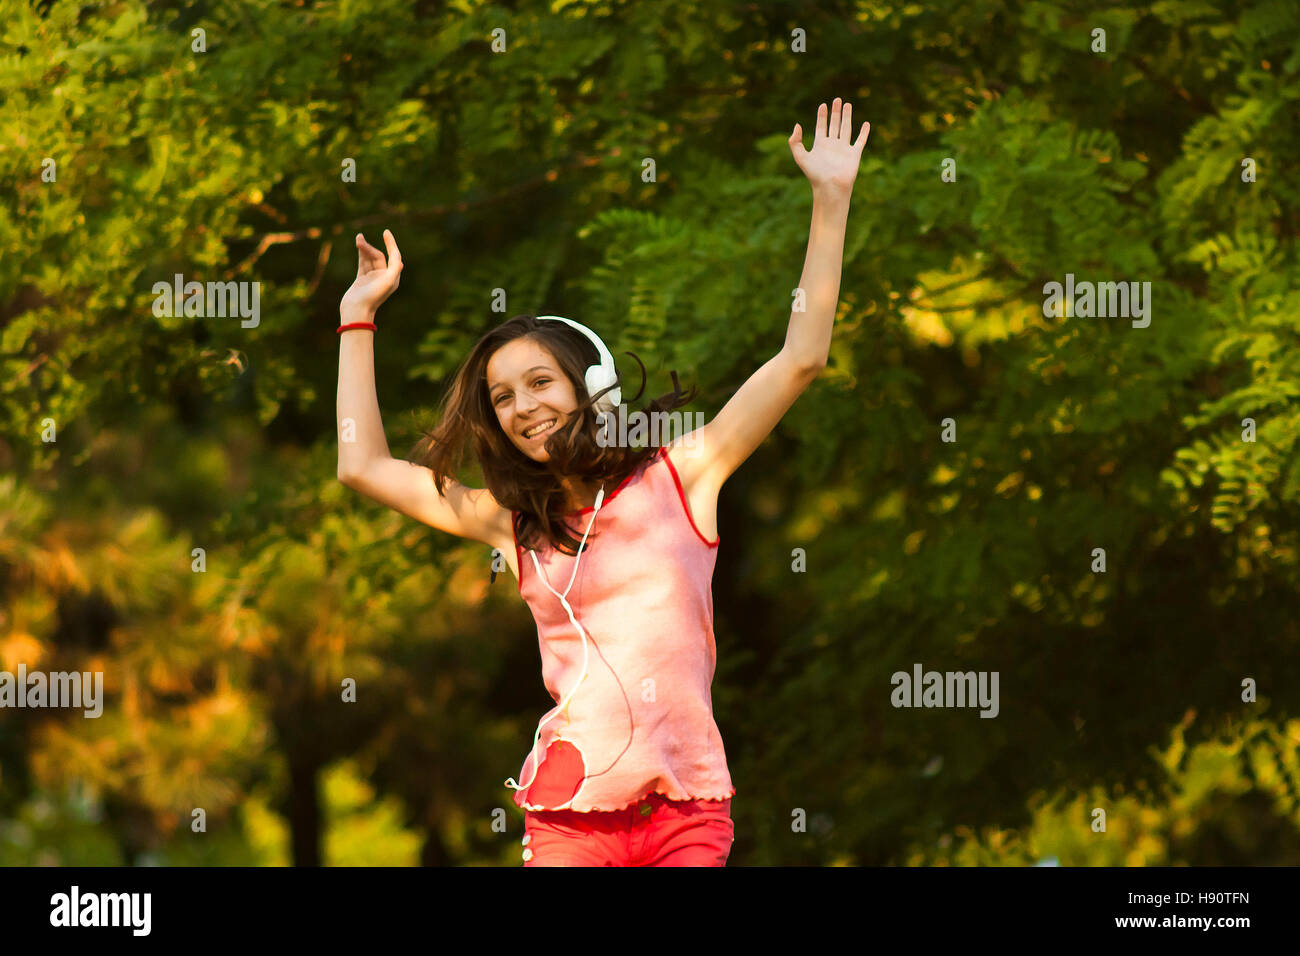 Happy teenage girl in red dancing in nature while listening to the music on headphones, smiling and looking at camera, - Stock Image